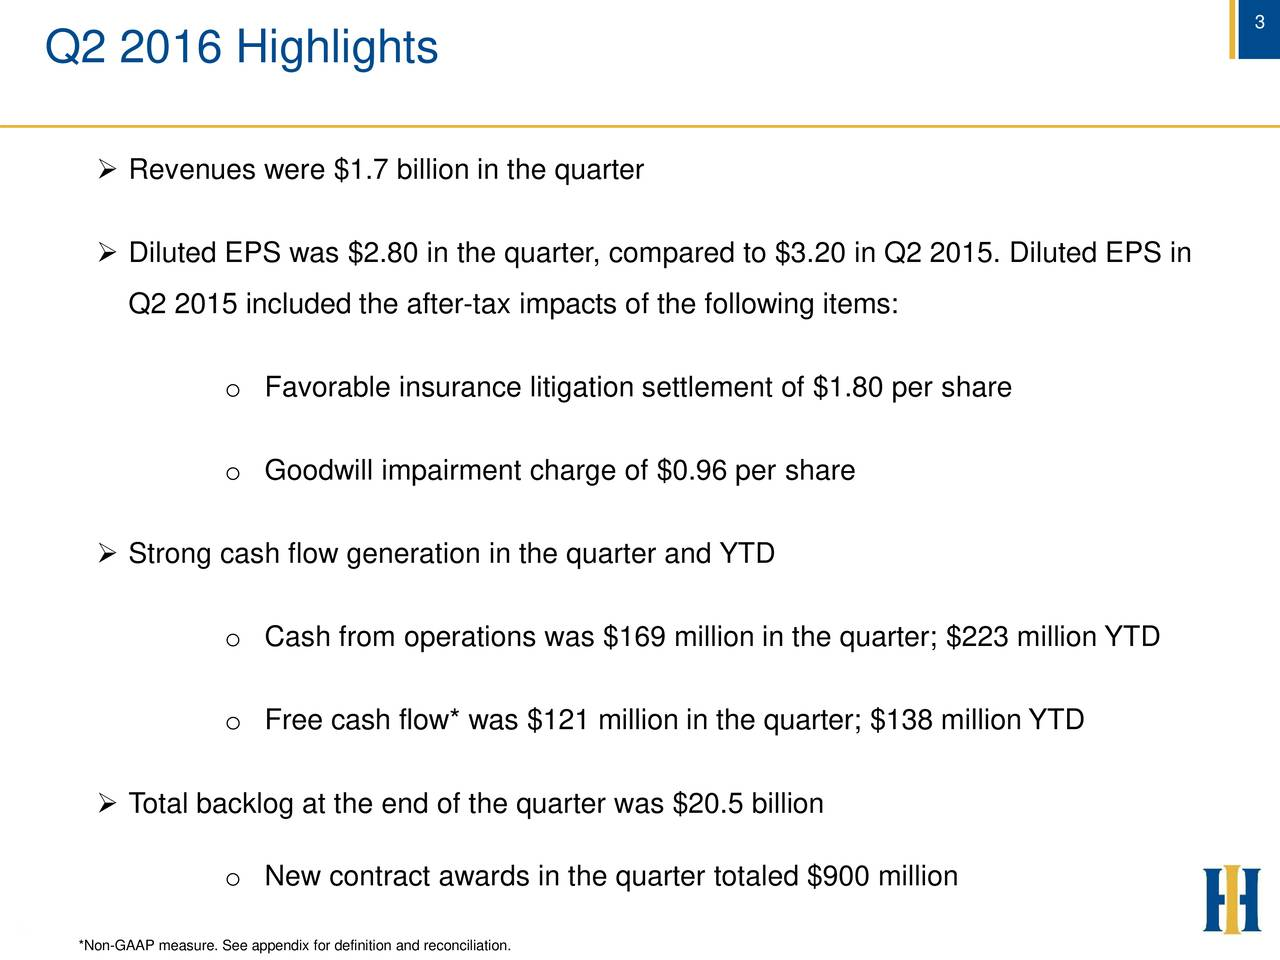 Q2 2016 Highlights Revenues were $1.7 billion in the quarter Diluted EPS was $2.80 in the quarter, compared to $3.20 in Q2 2015. Diluted EPS in Q2 2015 included the after-tax impacts of the following items: o Favorable insurance litigation settlement of $1.80 per share o Goodwill impairment charge of $0.96 per share Strong cash flow generation in the quarter and YTD o Cash from operations was $169 million in the quarter; $223 million YTD o Free cash flow* was $121 million in the quarter; $138 million YTD Total backlog at the end of the quarter was $20.5 billion o New contract awards in the quarter totaled $900 million 3